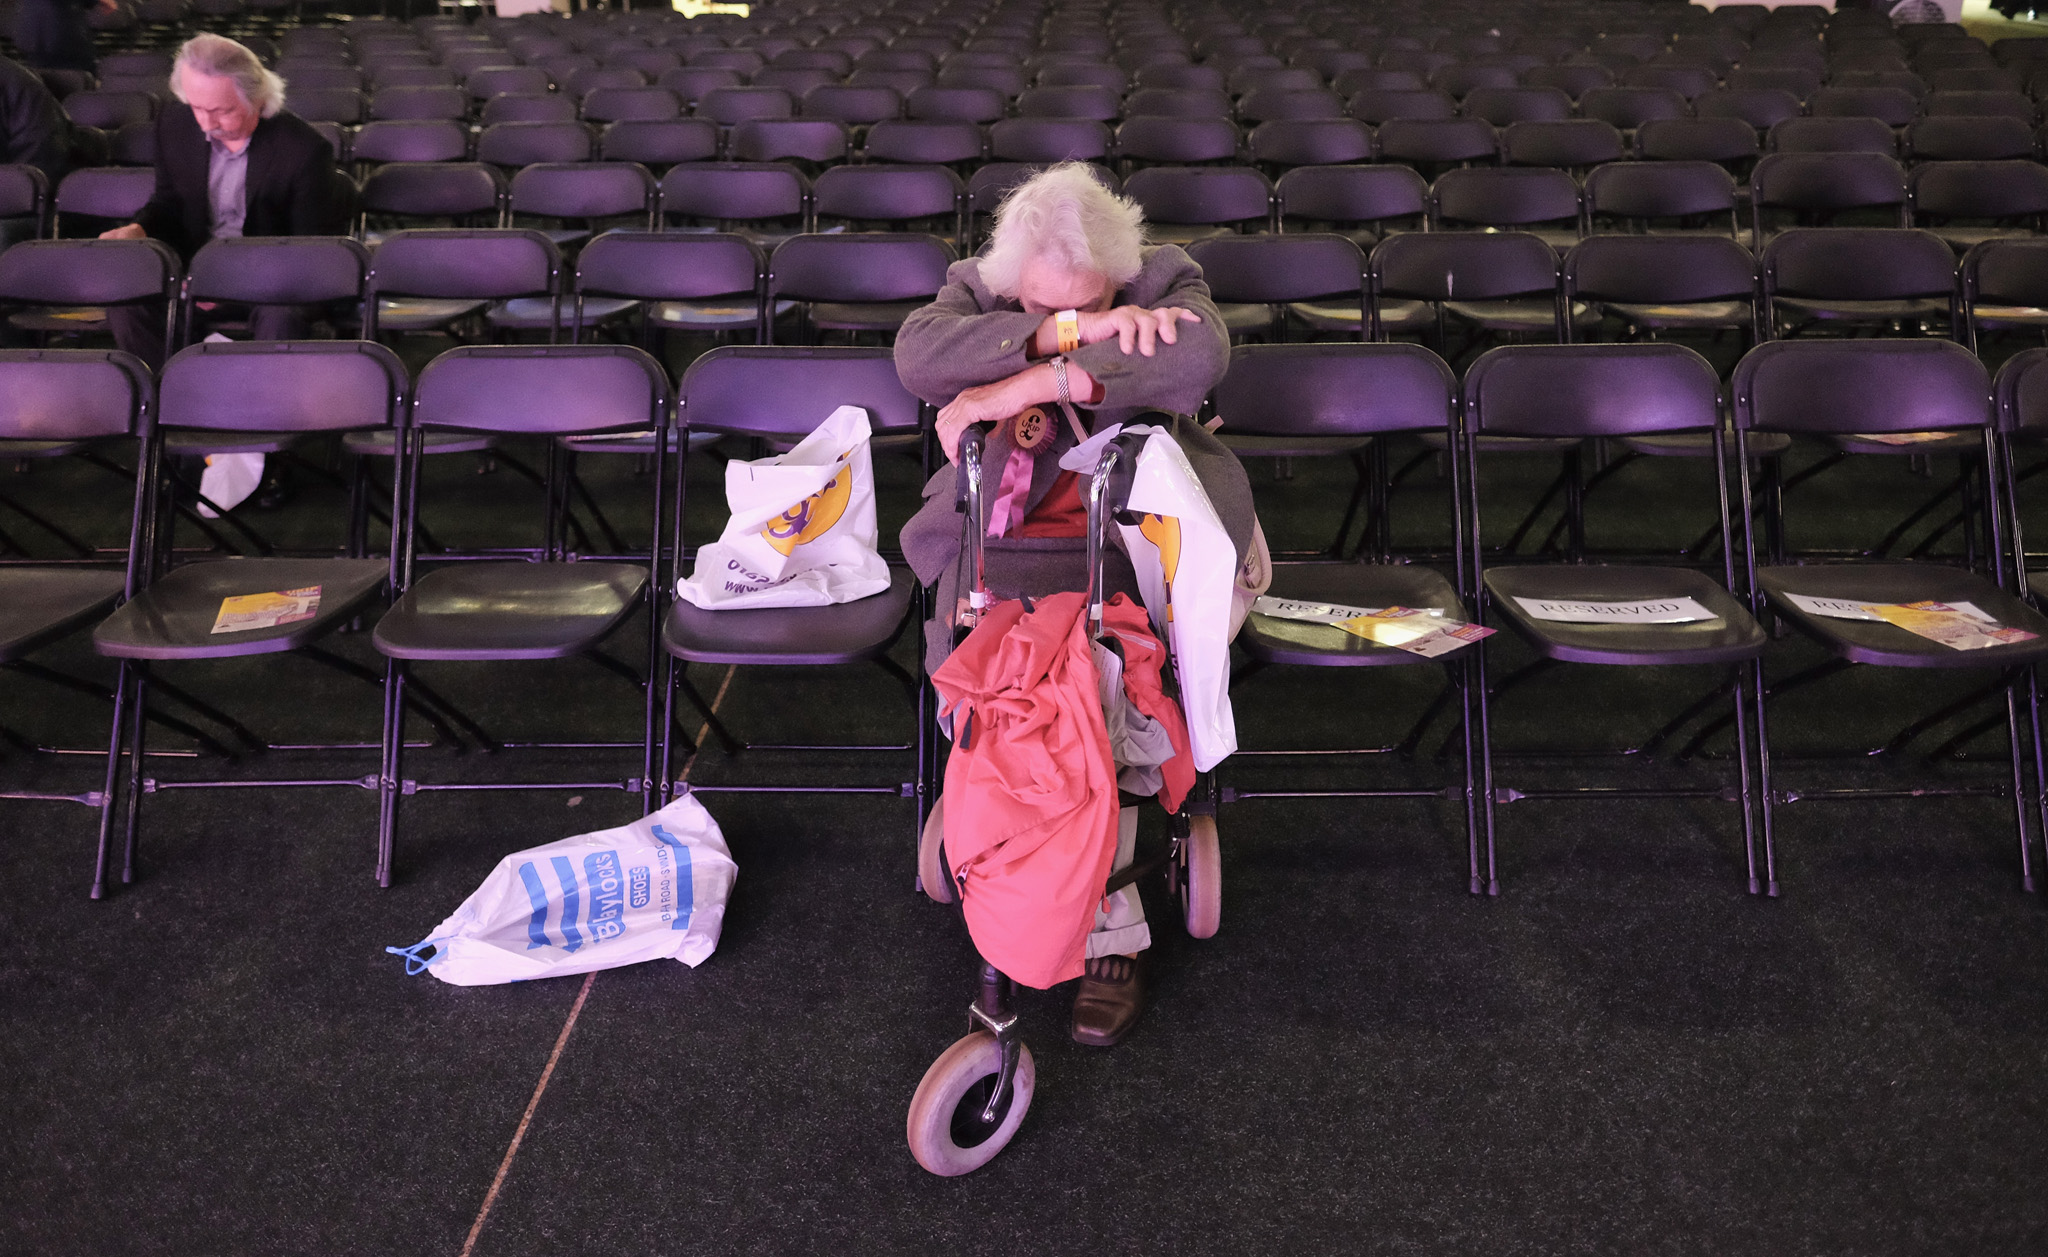 A woman rests as she waits for the conference to start ahead of the UK Independence Party annual conference